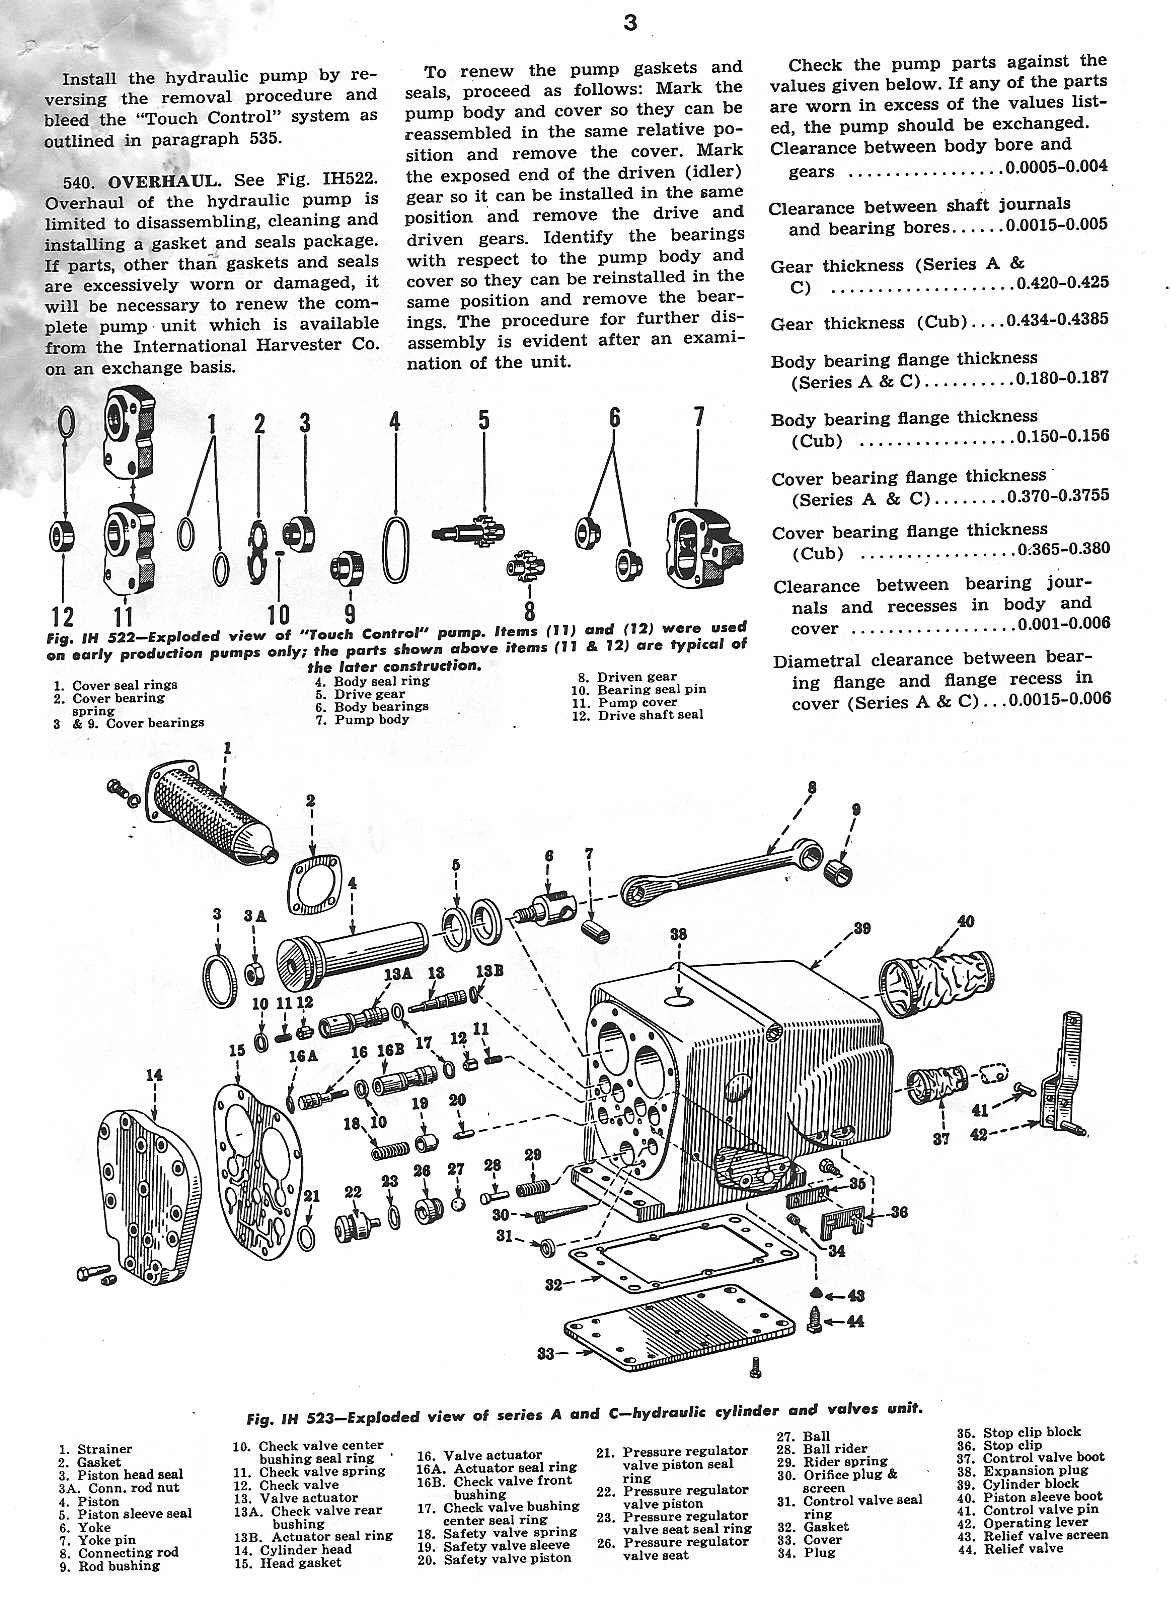 farmall super c parts diagram farmall super a hydraulic system diagram - wiring diagram